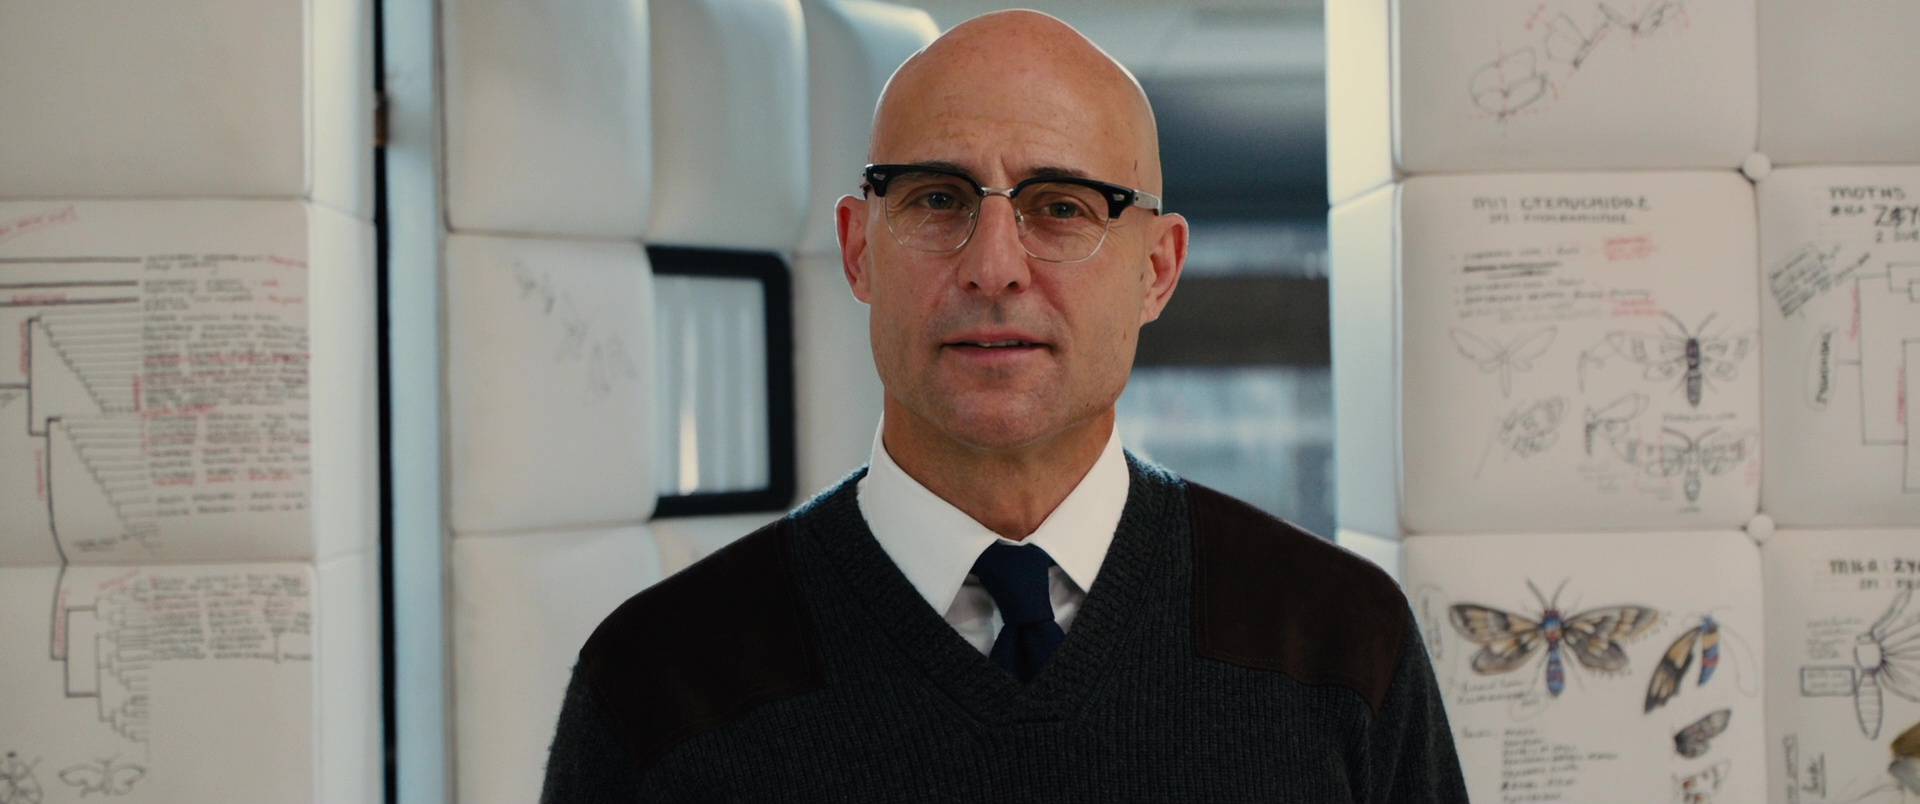 8333a8a6d43 Cutler and Gross 0755 Frame Eyeglasses Worn by Mark Strong in Kingsman 2   The Golden